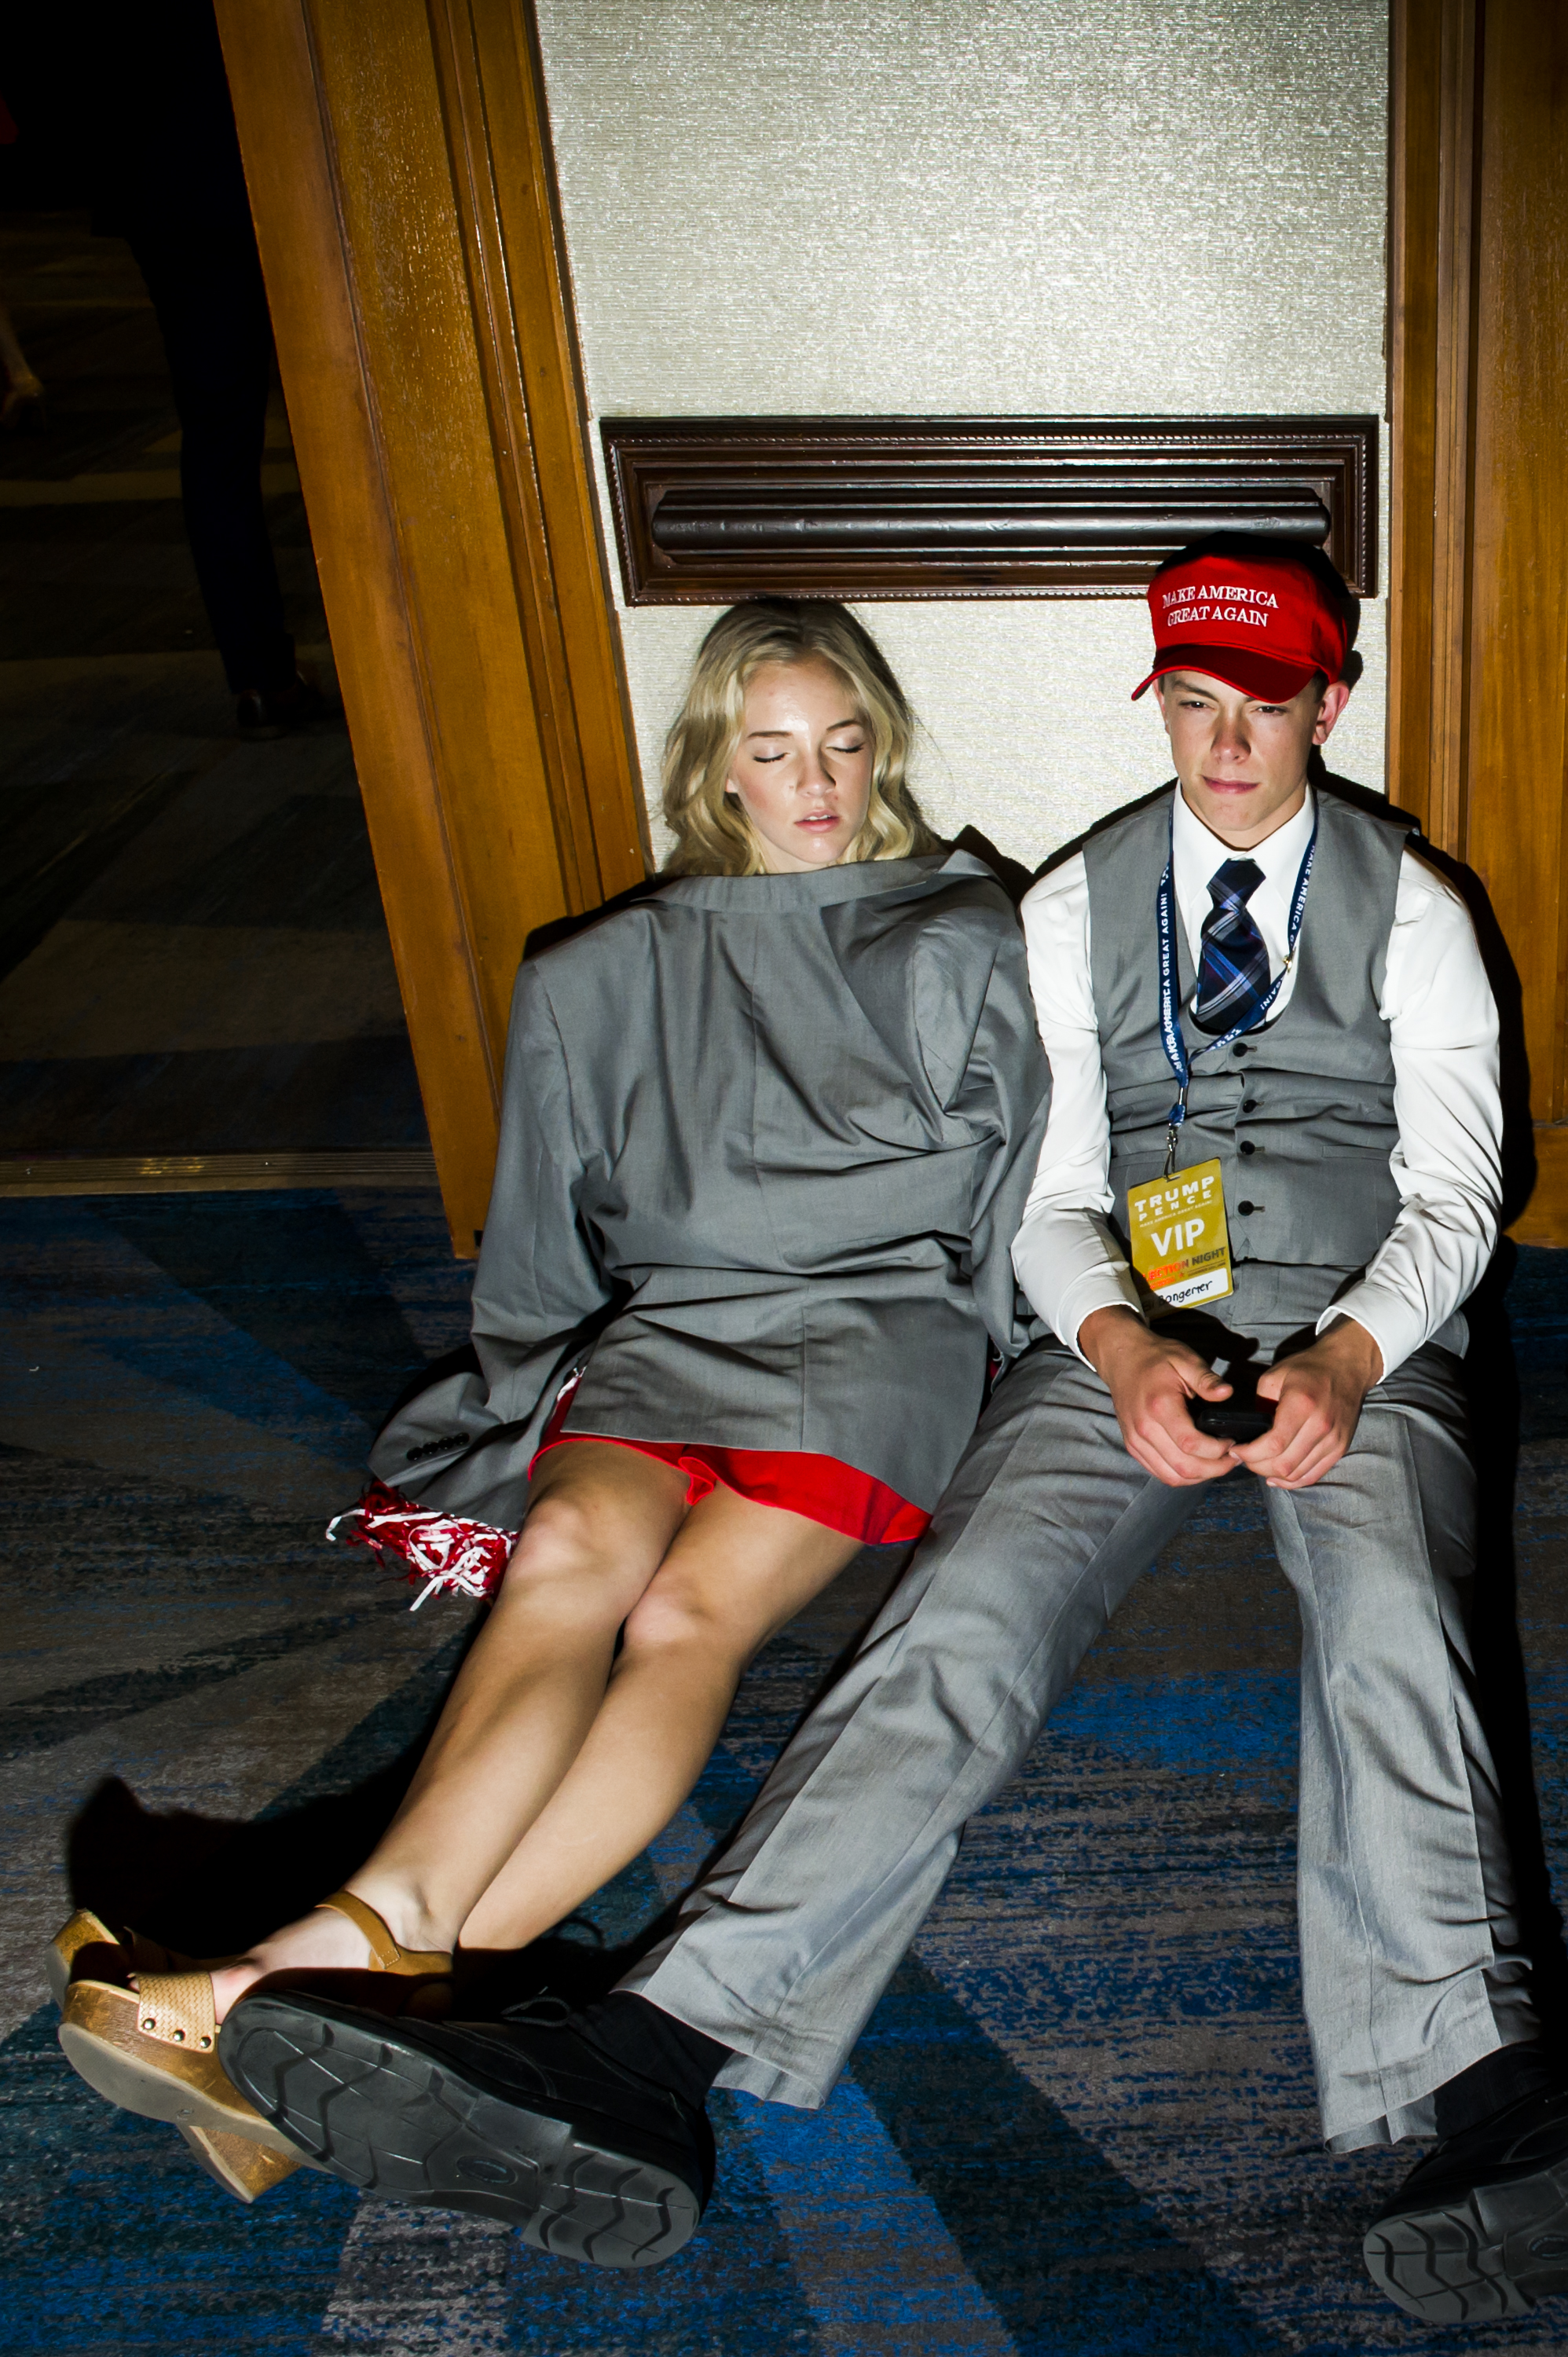 Scenes from President-elect Donald Trump's Victory Party on Tuesday, Nov. 8, 2016 in New York's Manhattan borough.